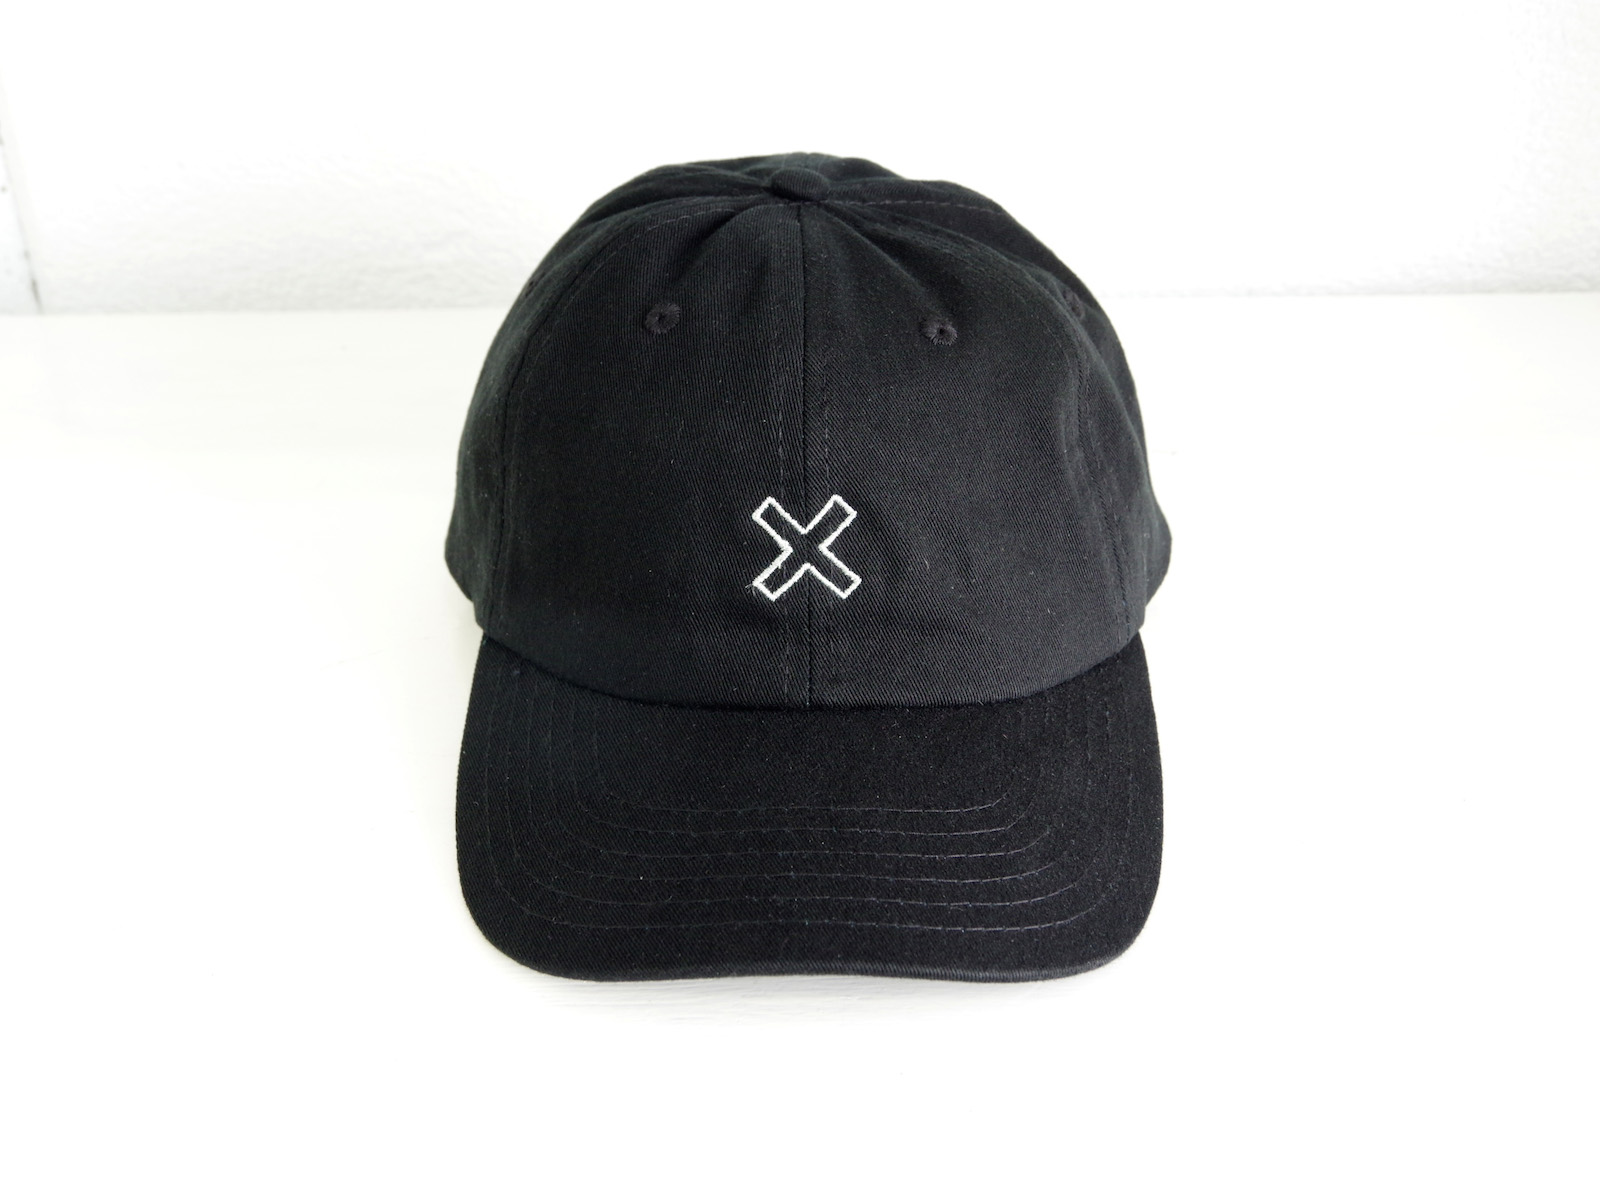 NEW ARRIVALS – THE XX Official Cap